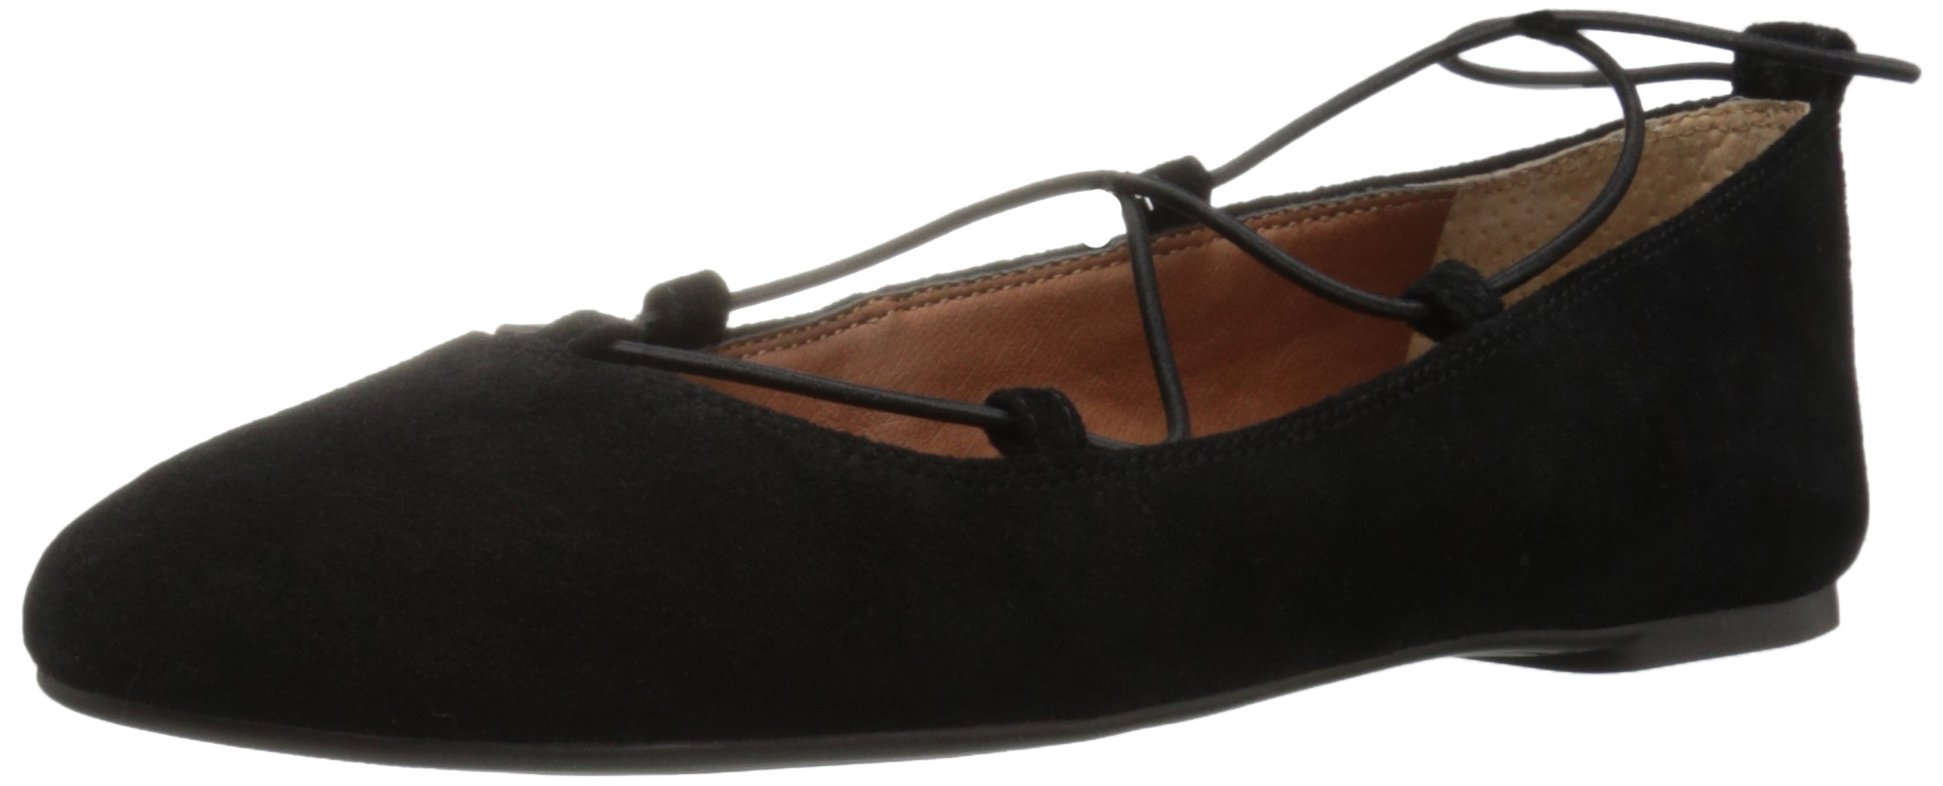 Lucky Brand Women's Aviee Pointed Toe Flat, Black, 6 Medium US